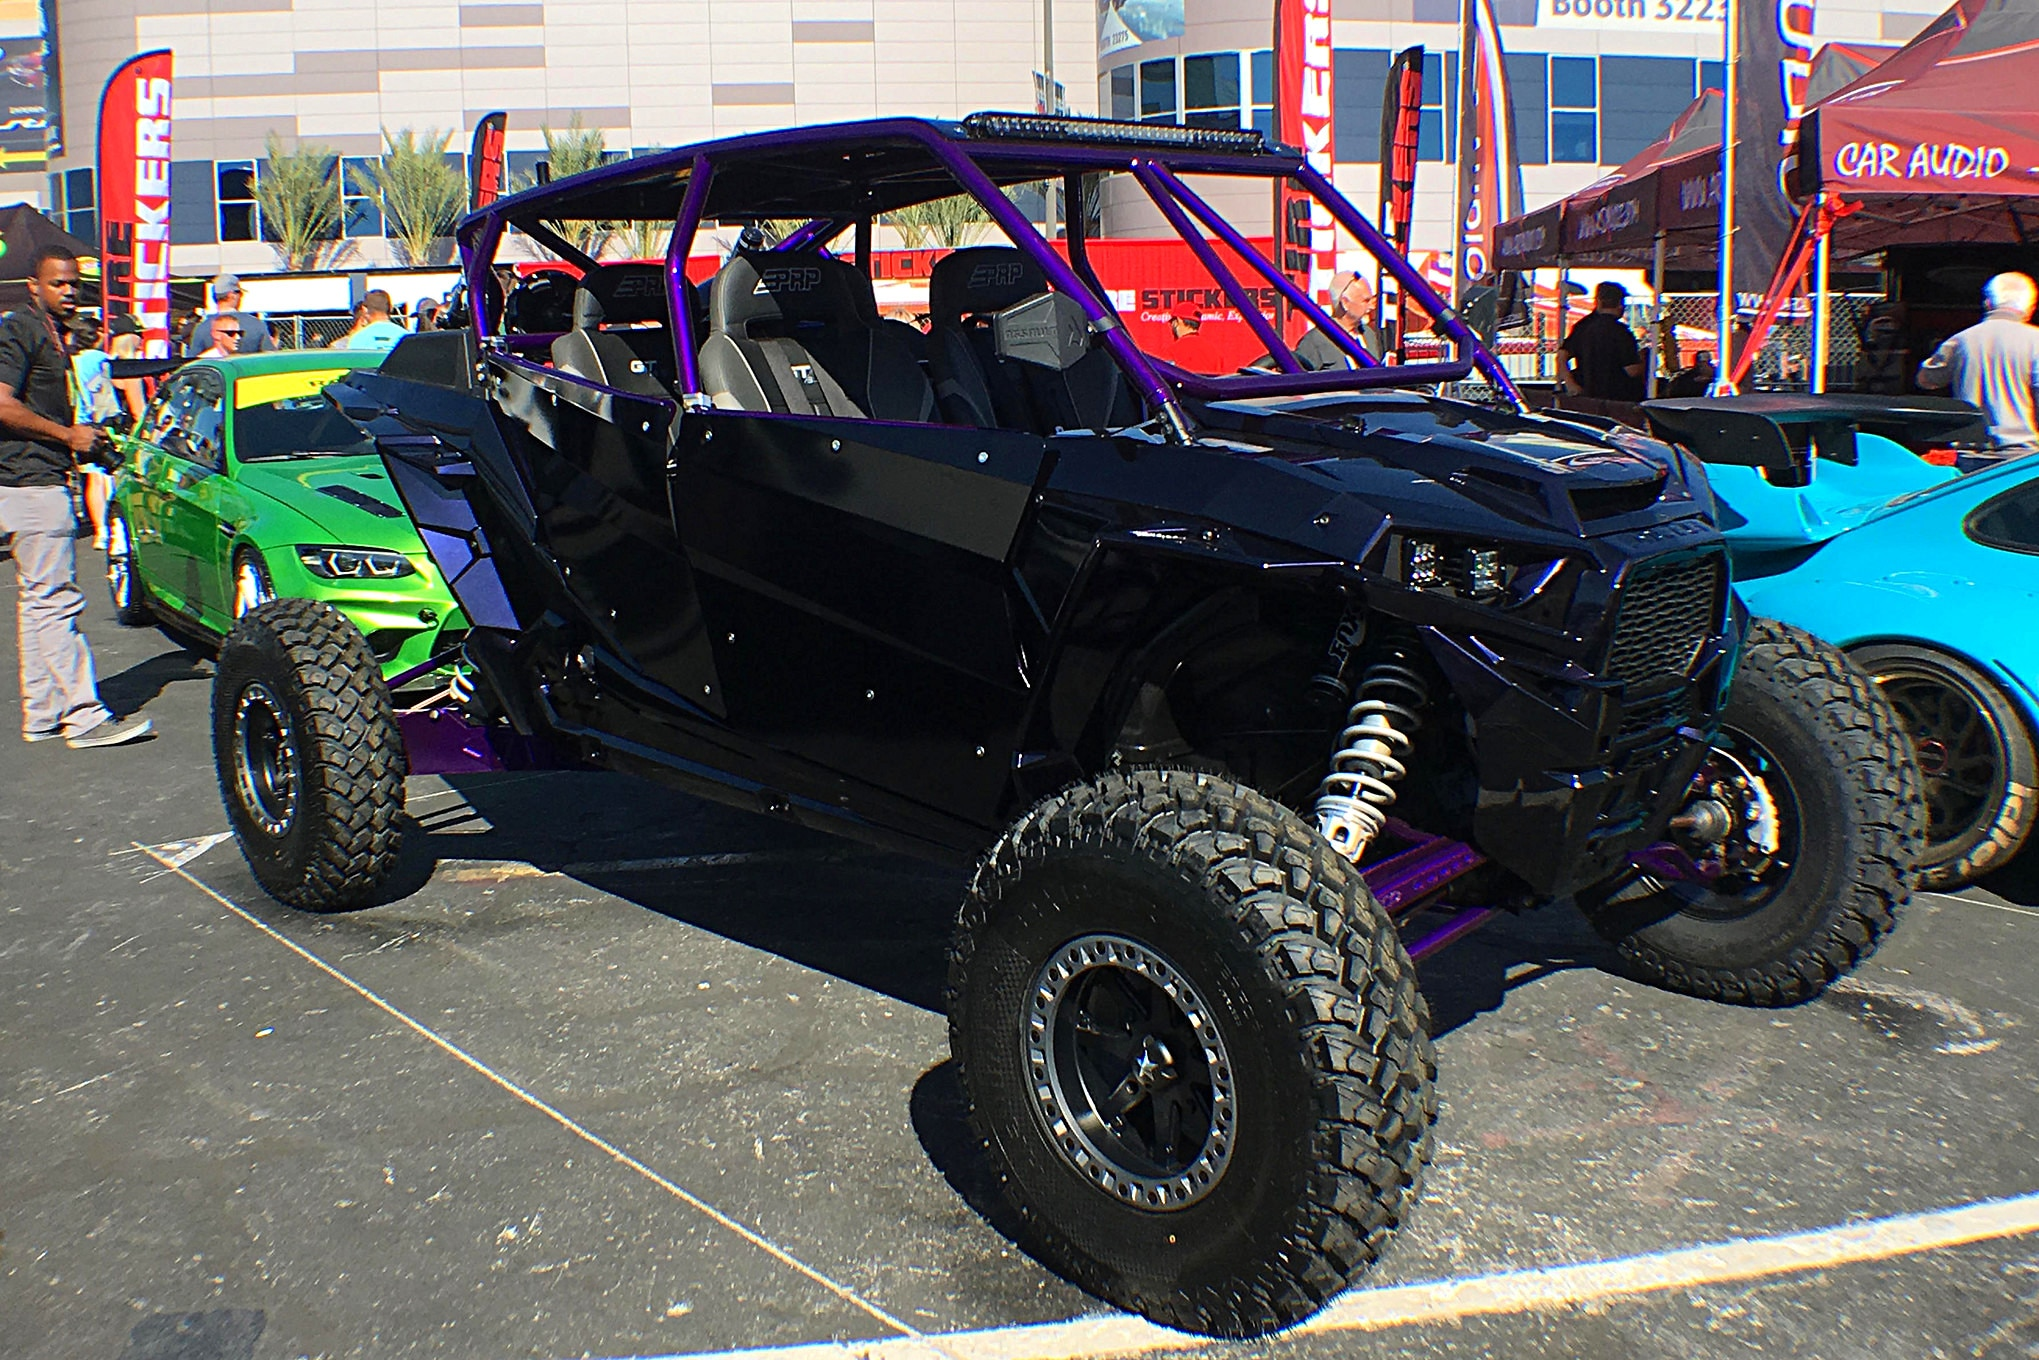 It wasn't exactly the Sand Sports show, but there were some mighty fine UTVs at SEMA this year.